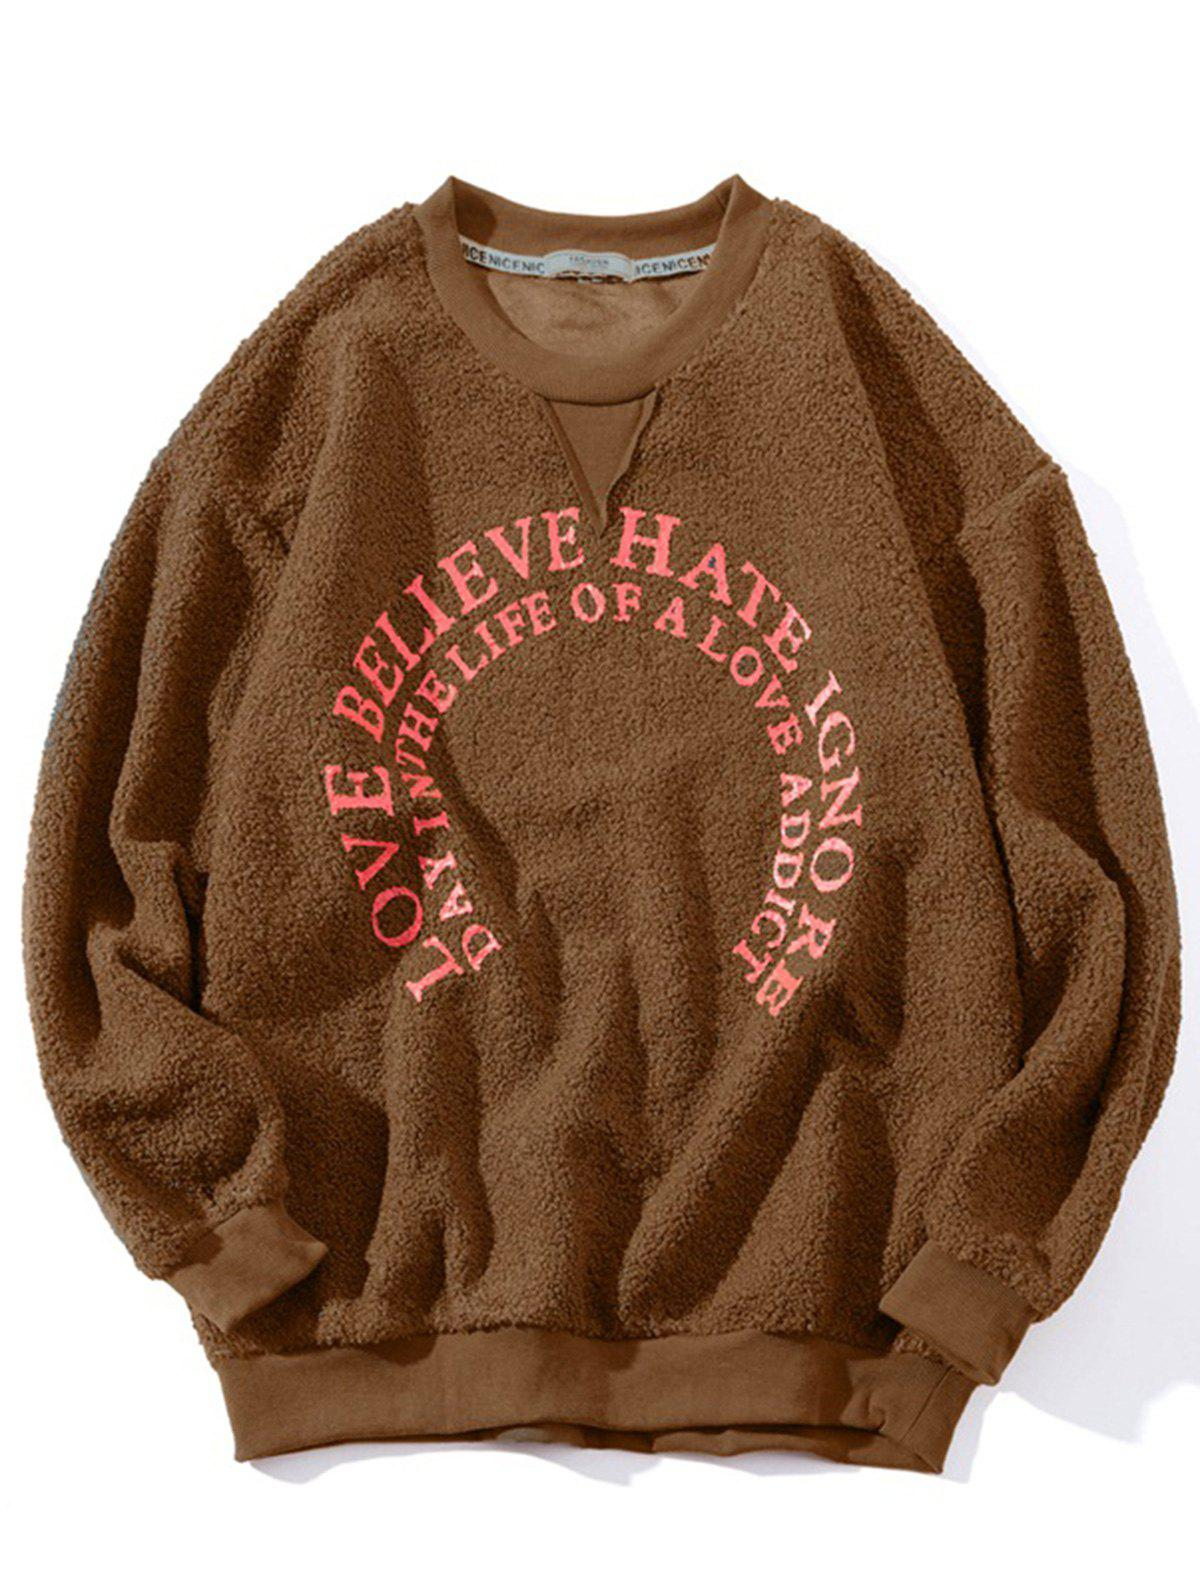 Sweat-Shirt Pull-Over Graphique Velours d'Agneau - Camel M